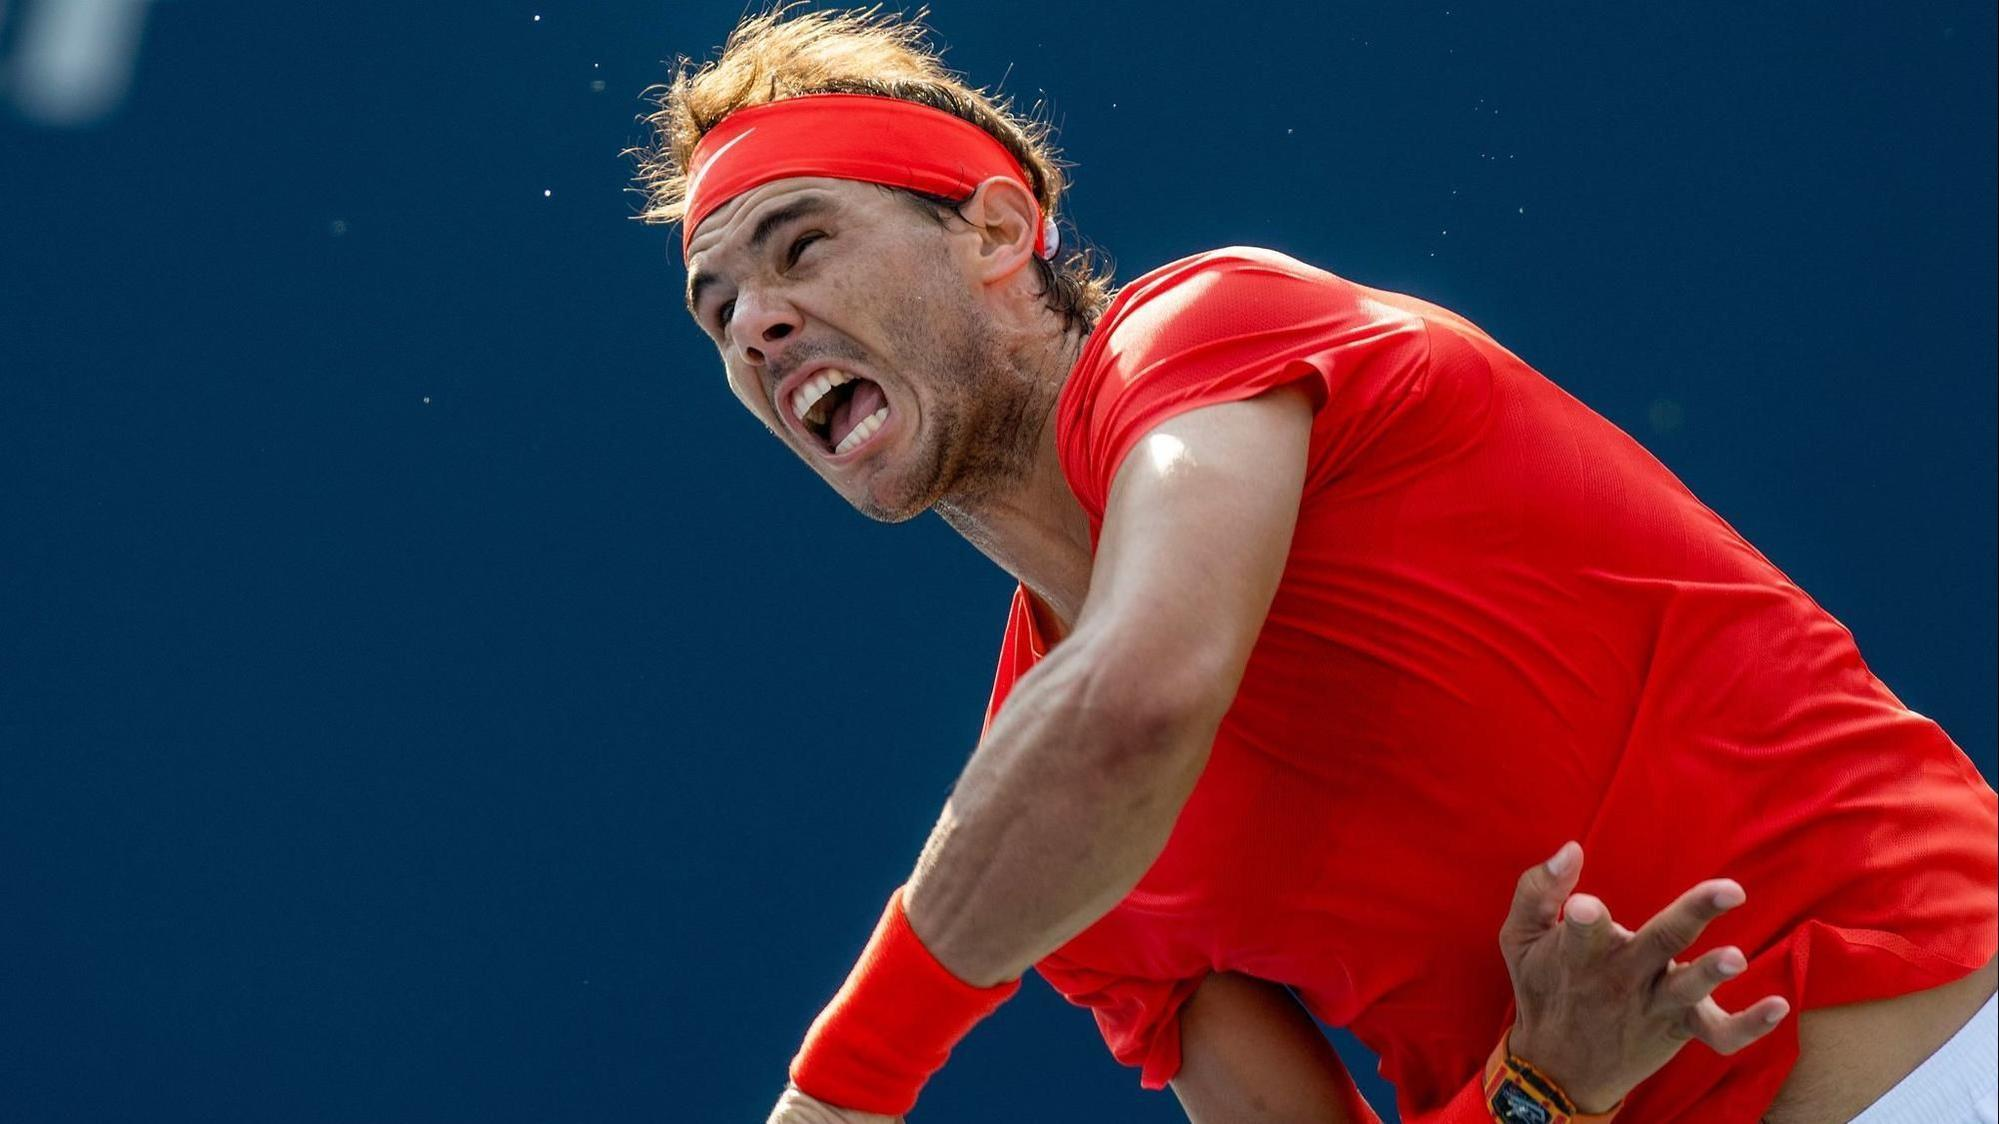 Rogers Cup: Nadal ends Tsitsipas' Toronto run on Greek's 20th birthday